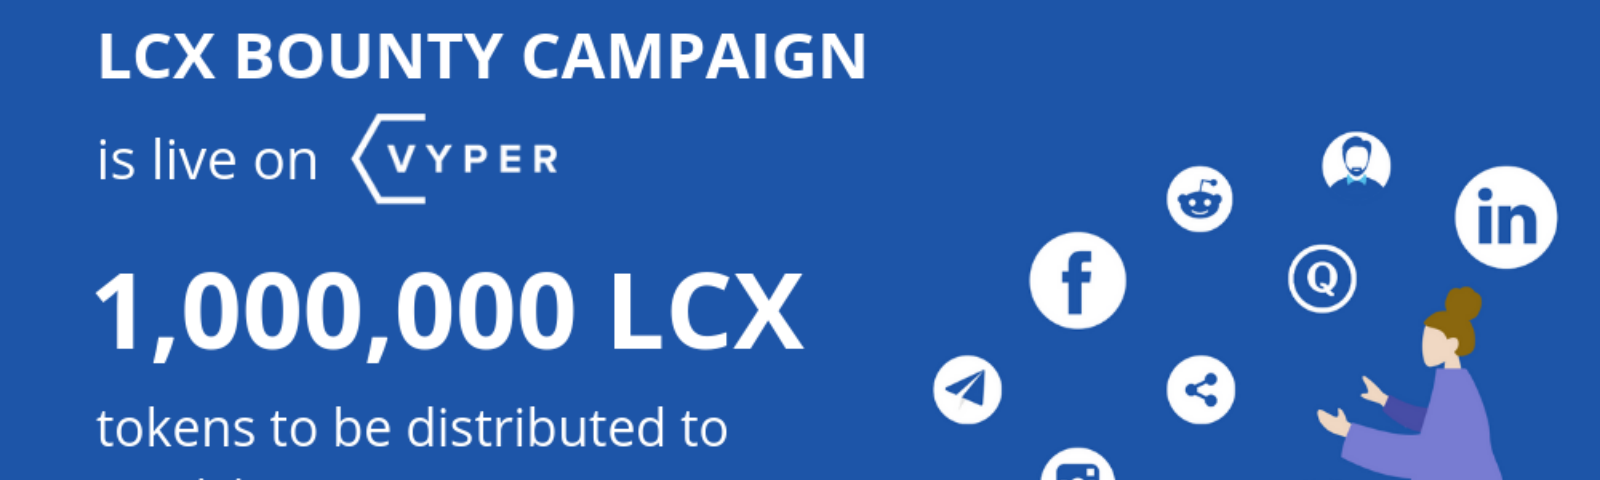 LCX Bounty Campaign live on Vyper.io